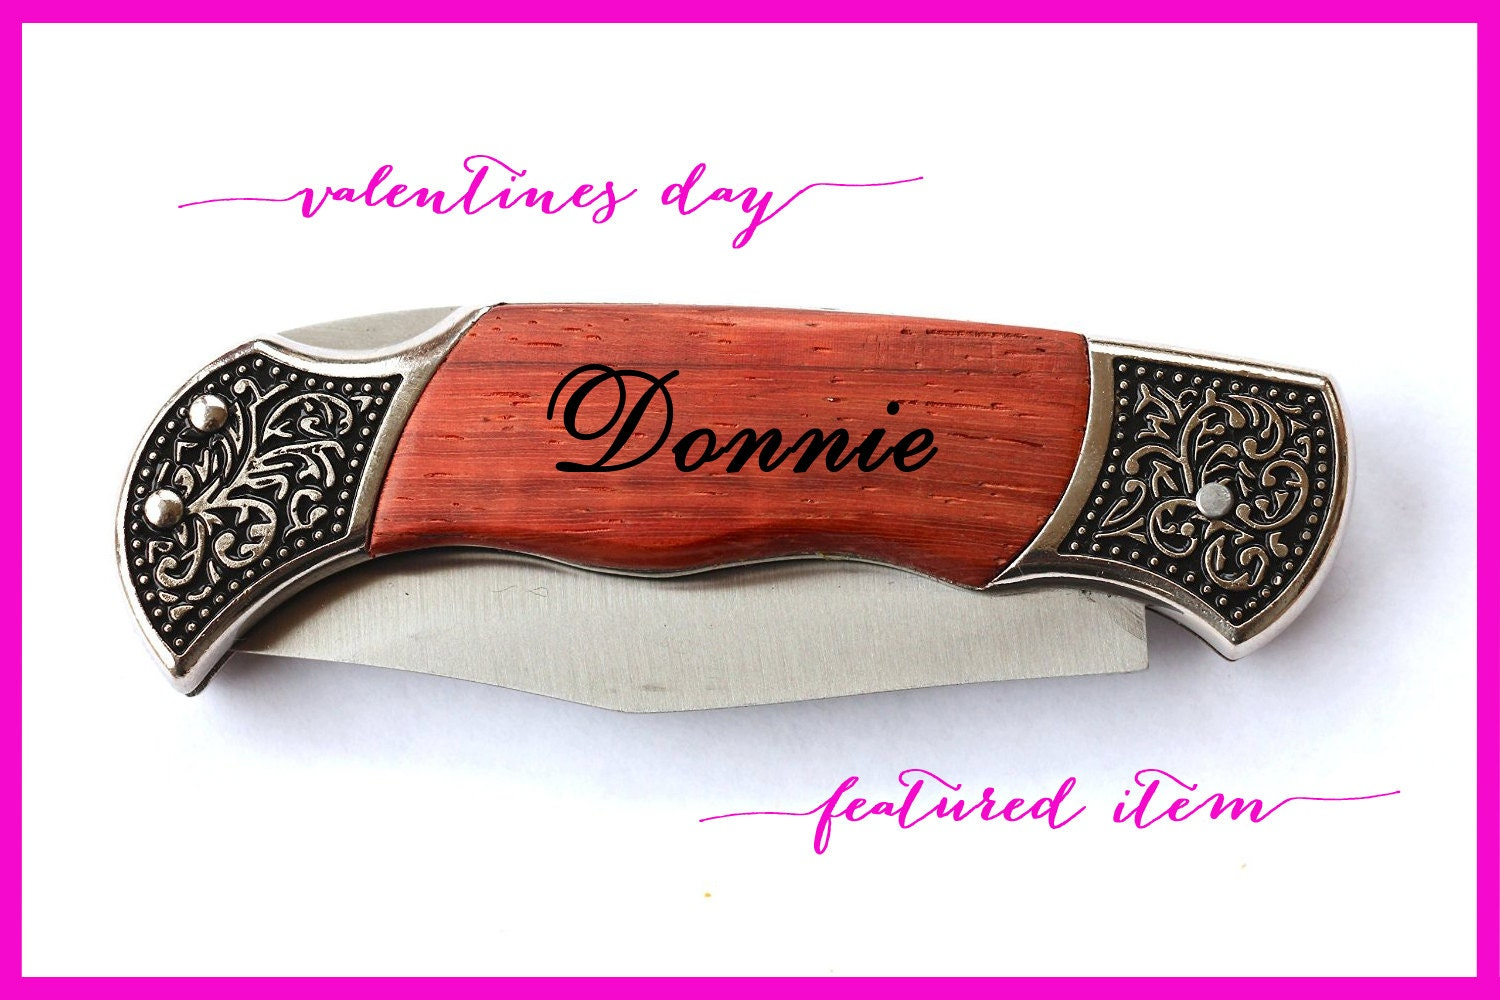 Valentines day gifts for him personalized knife men